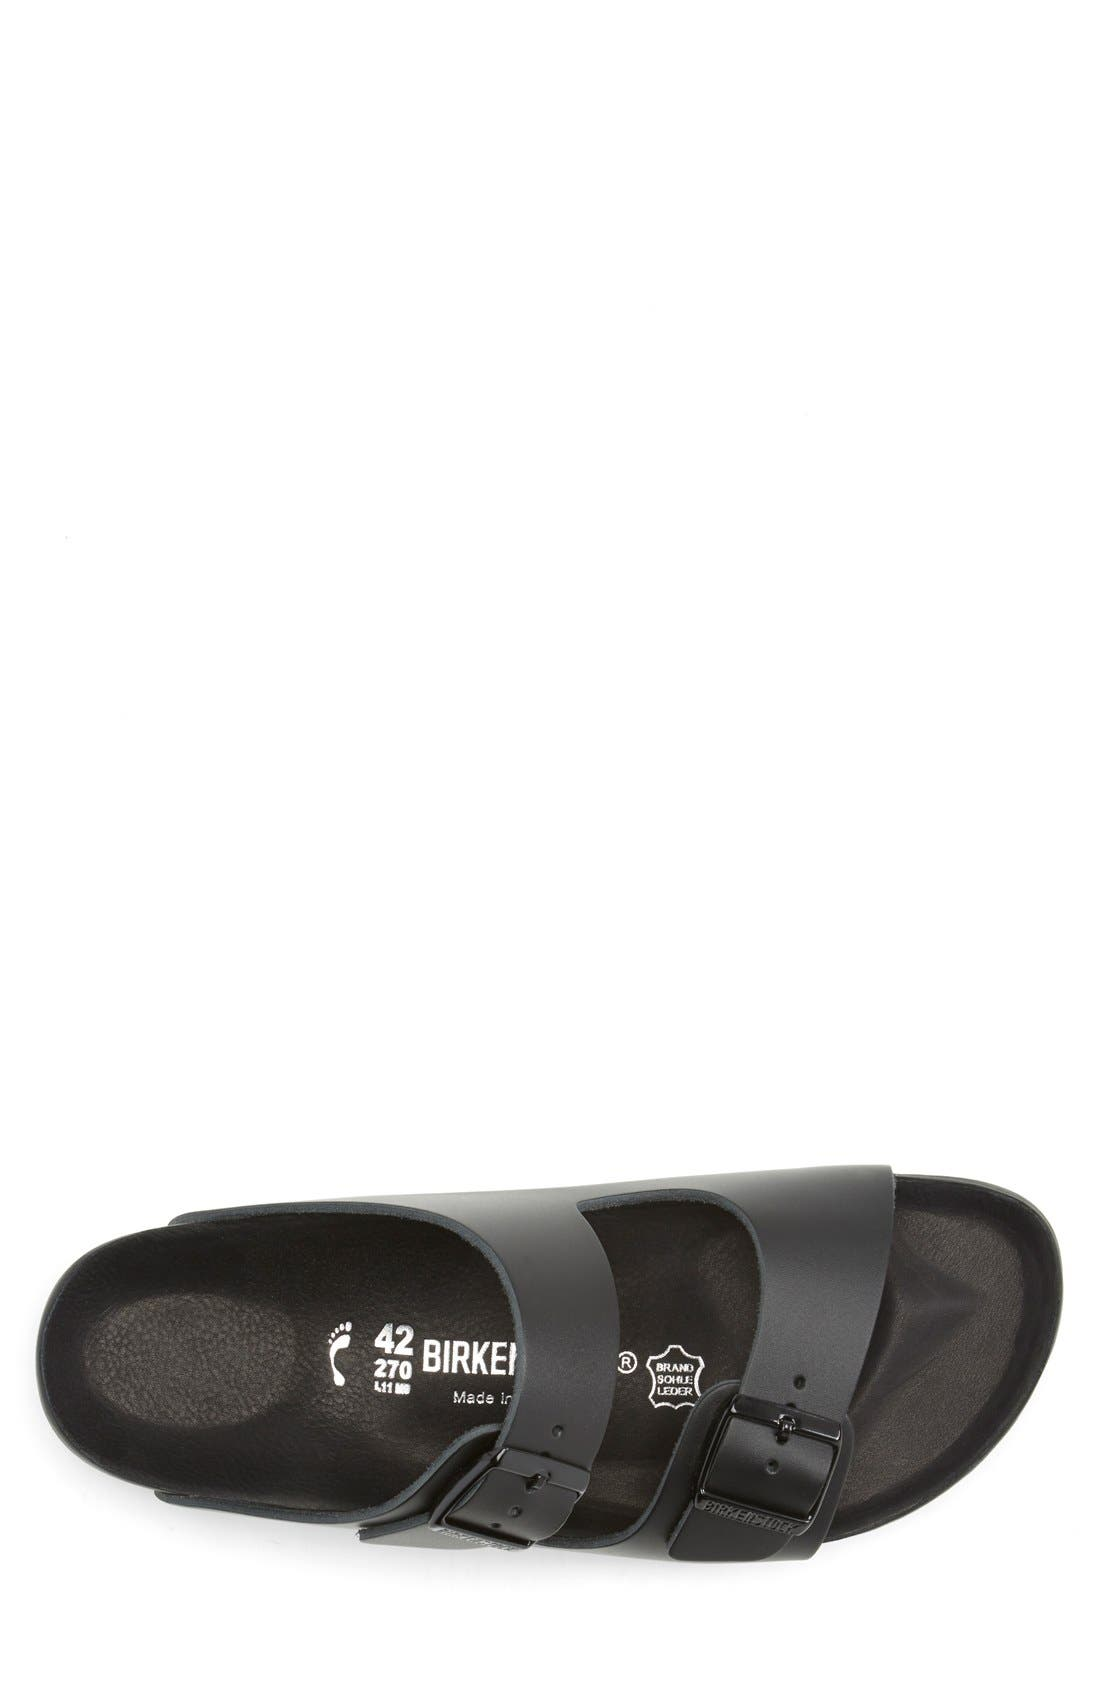 BIRKENSTOCK, Monterey Leather Slide Sandal, Alternate thumbnail 4, color, BLACK